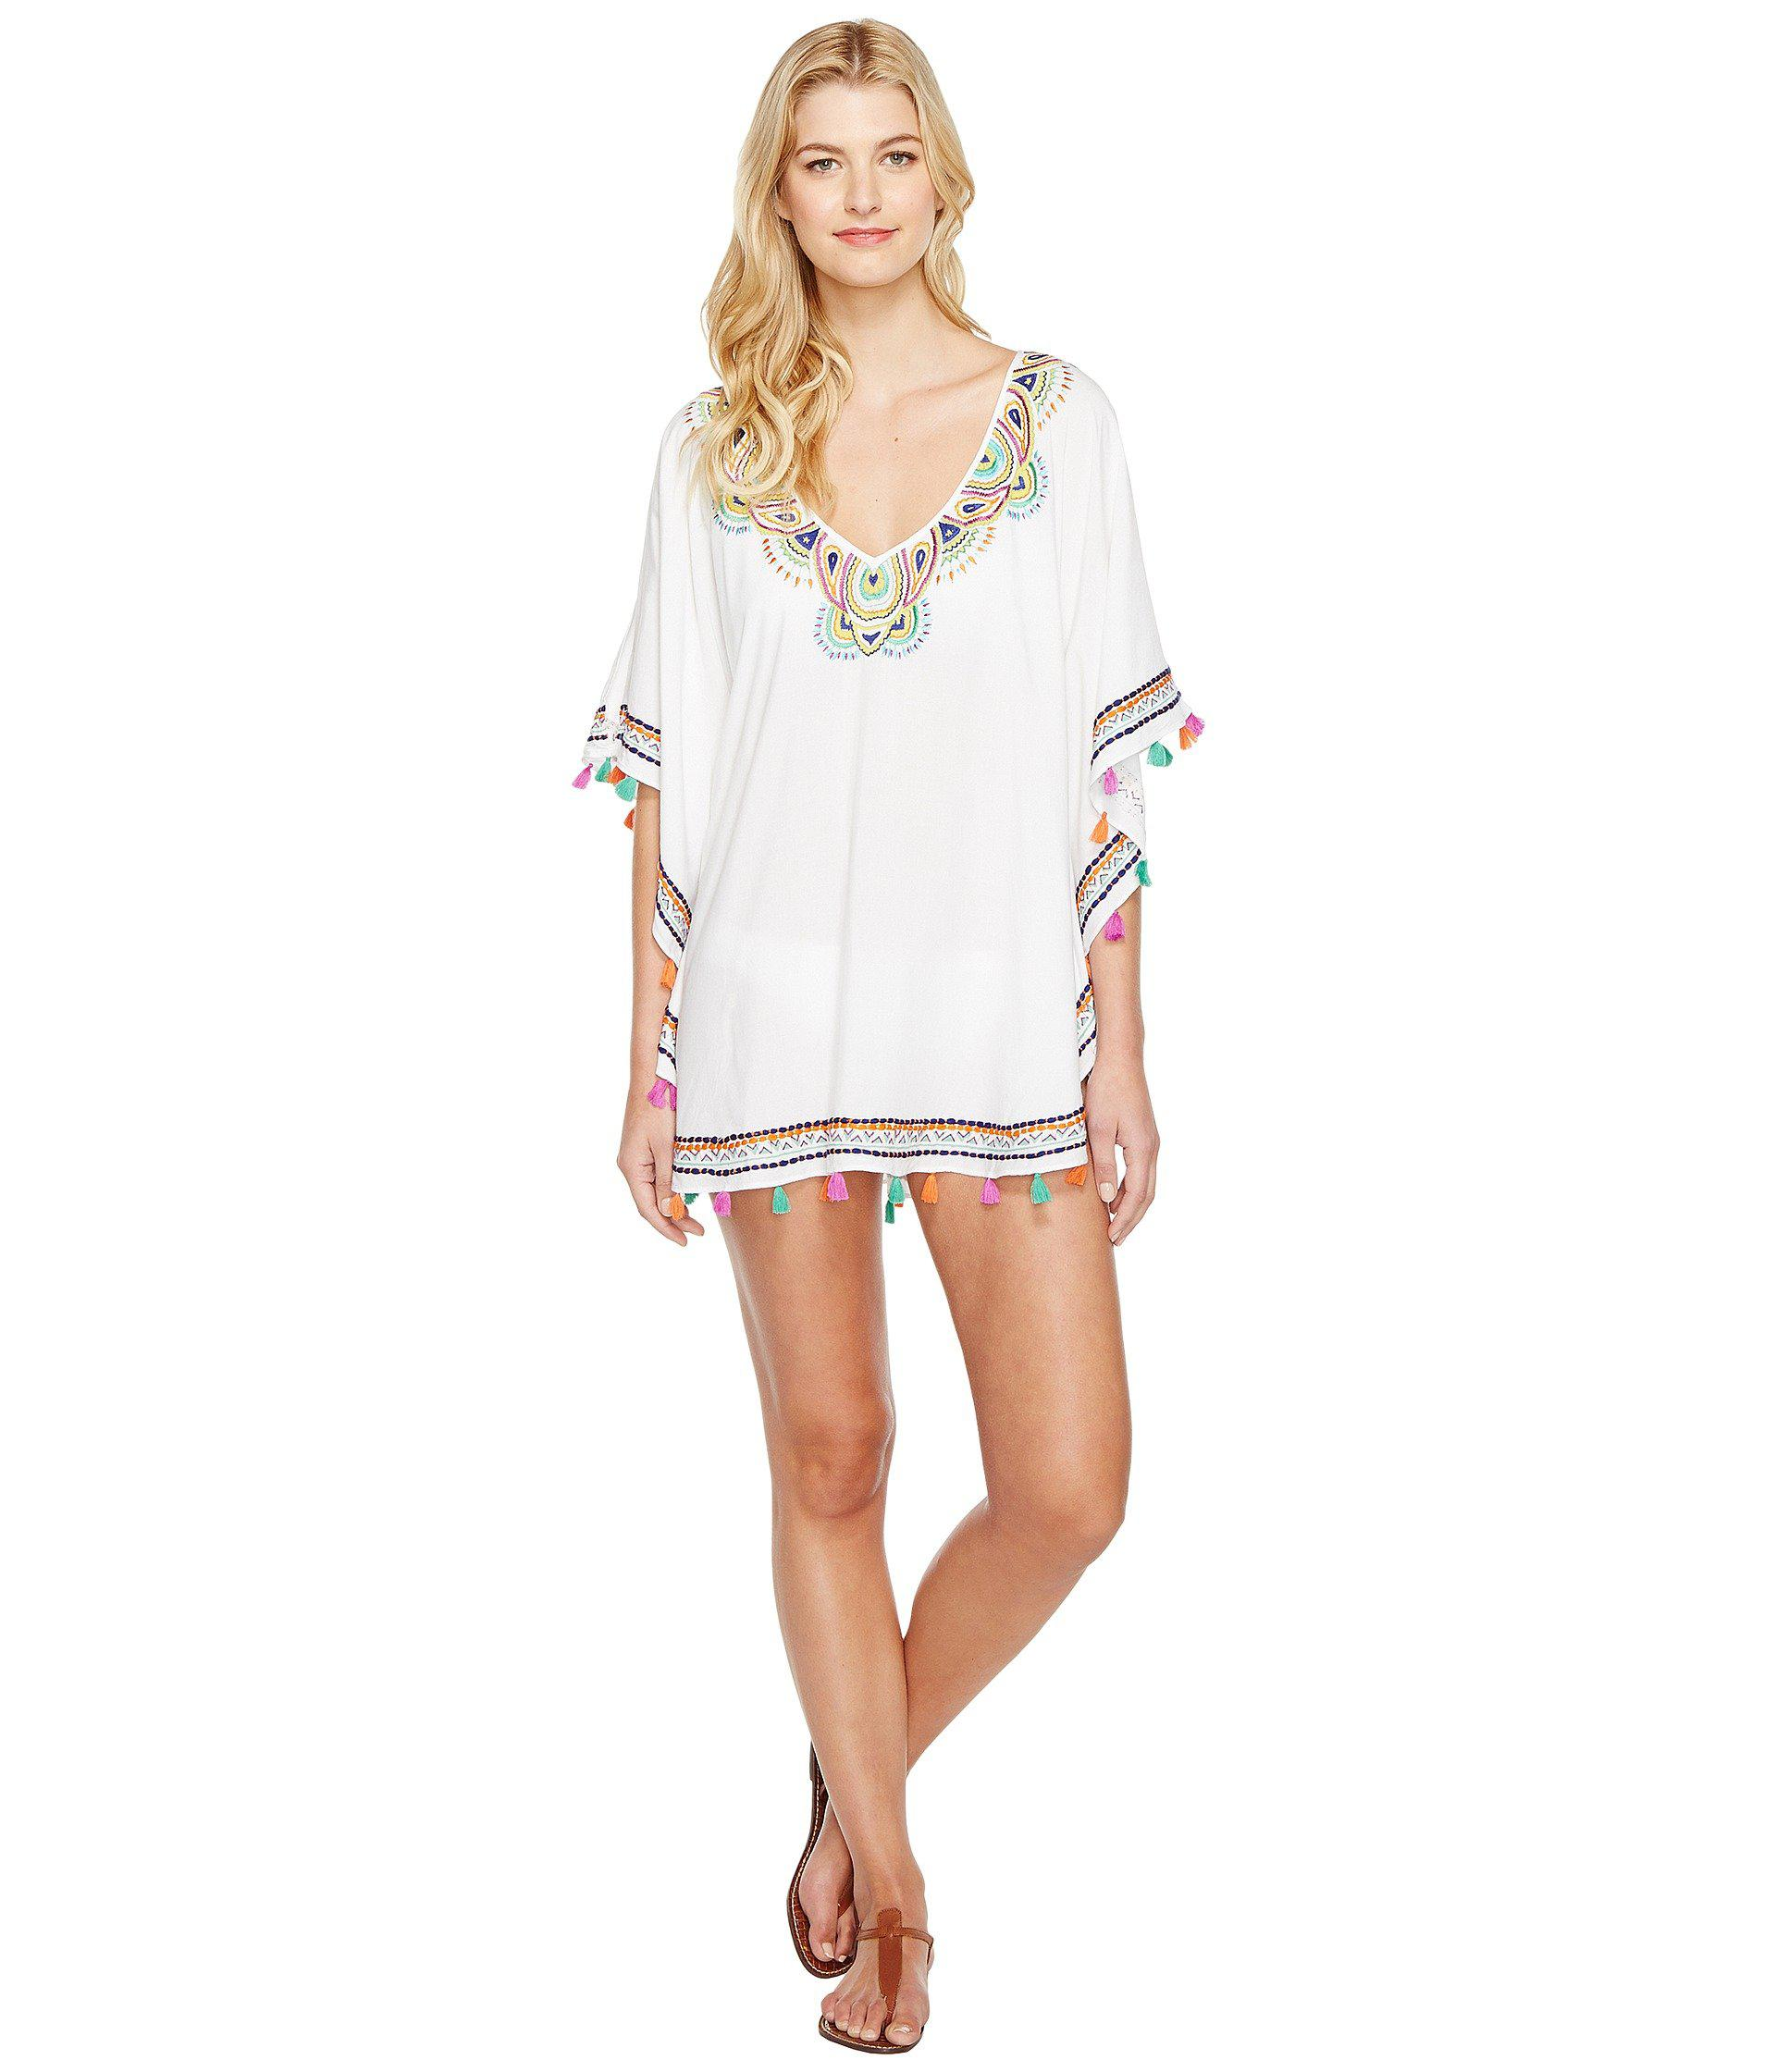 d1209c690c Lyst - Trina Turk Paisley Embroidery Caftan Cover-up in White